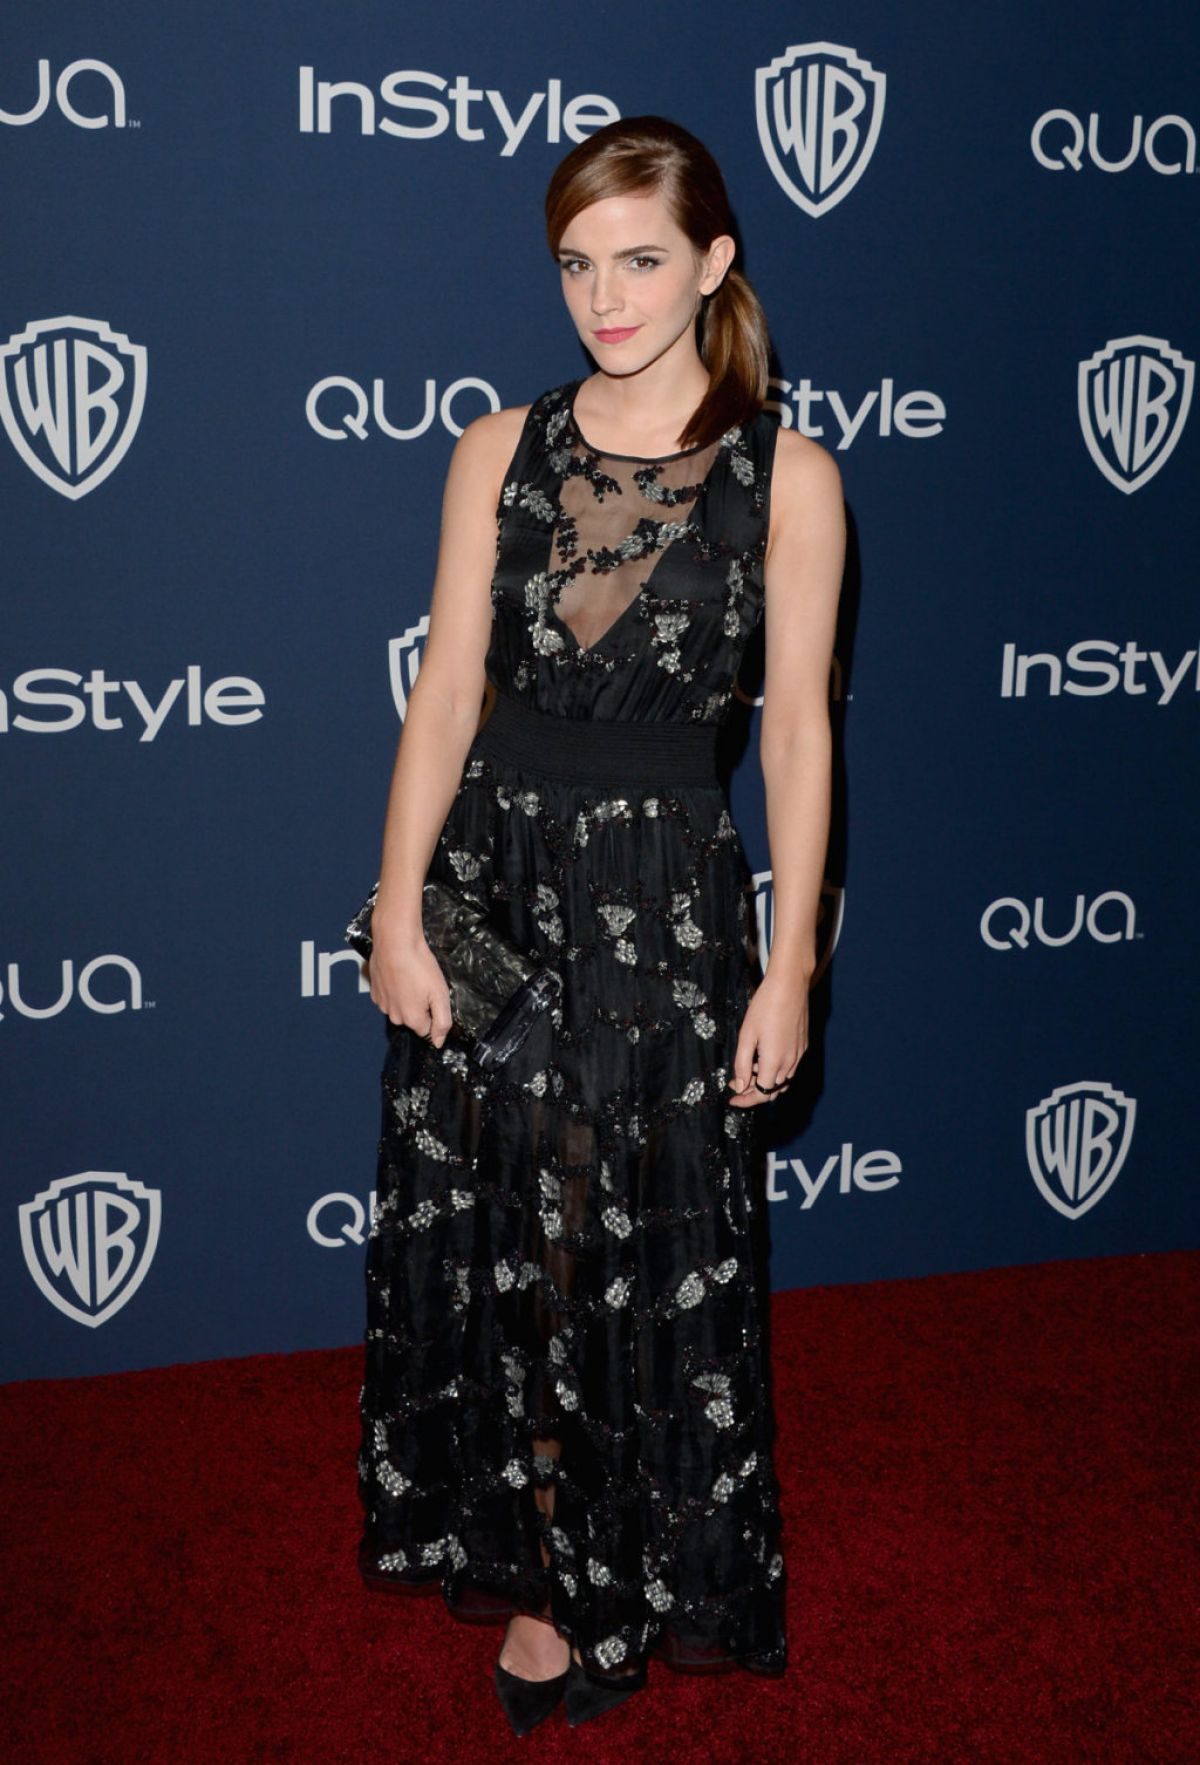 EMMA WATSON at Instyle and Warner Bros. Golden Globes Afterparty